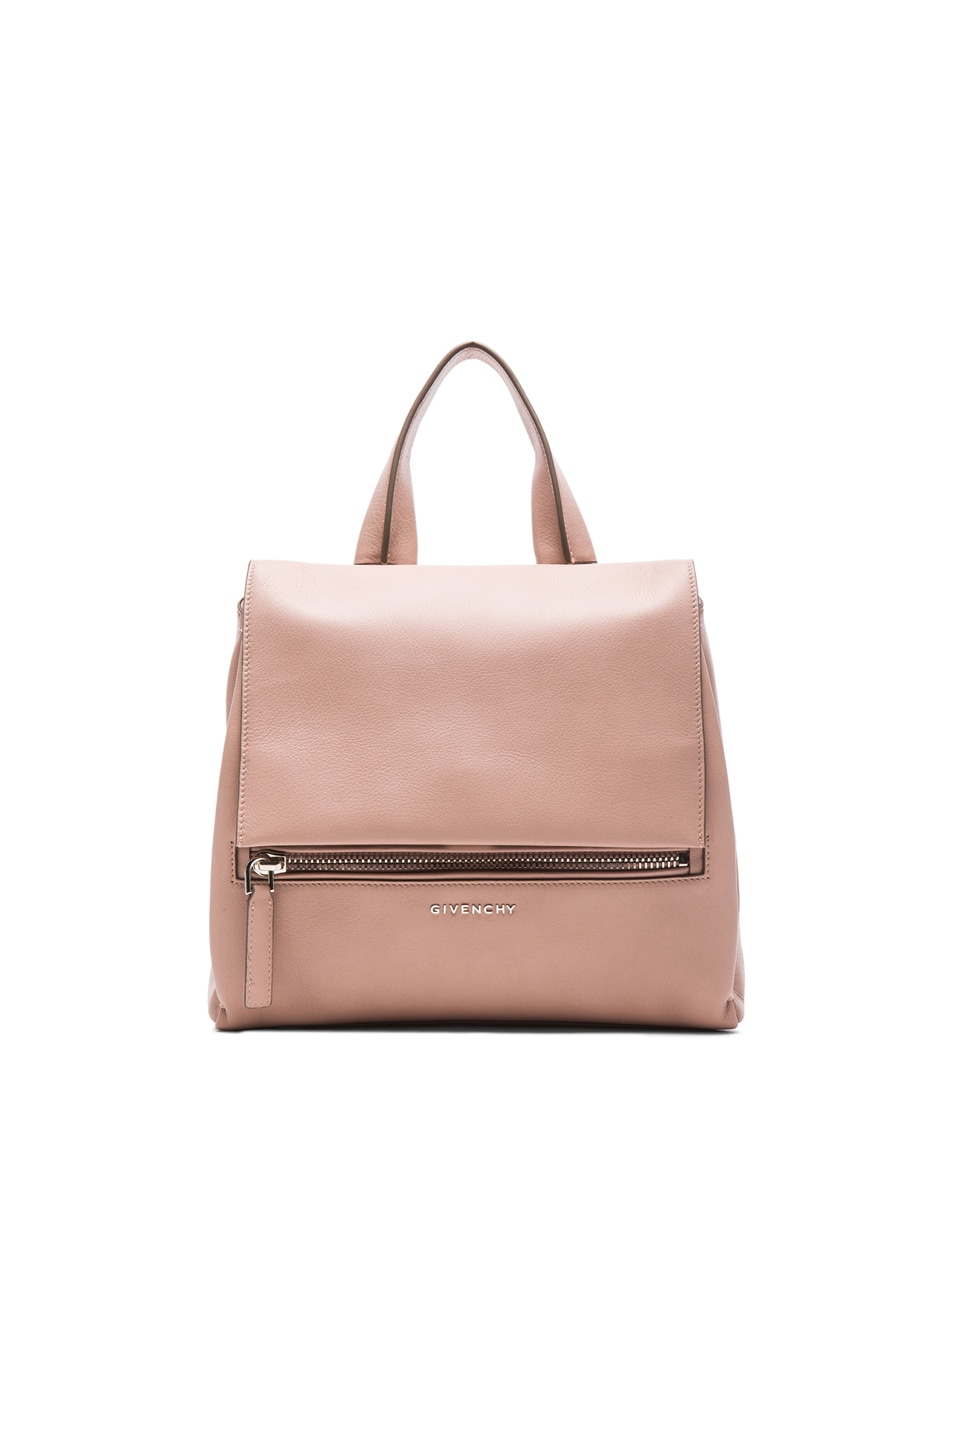 Image 1 of GIVENCHY Small Pandora Pure Flap Bag in Pink